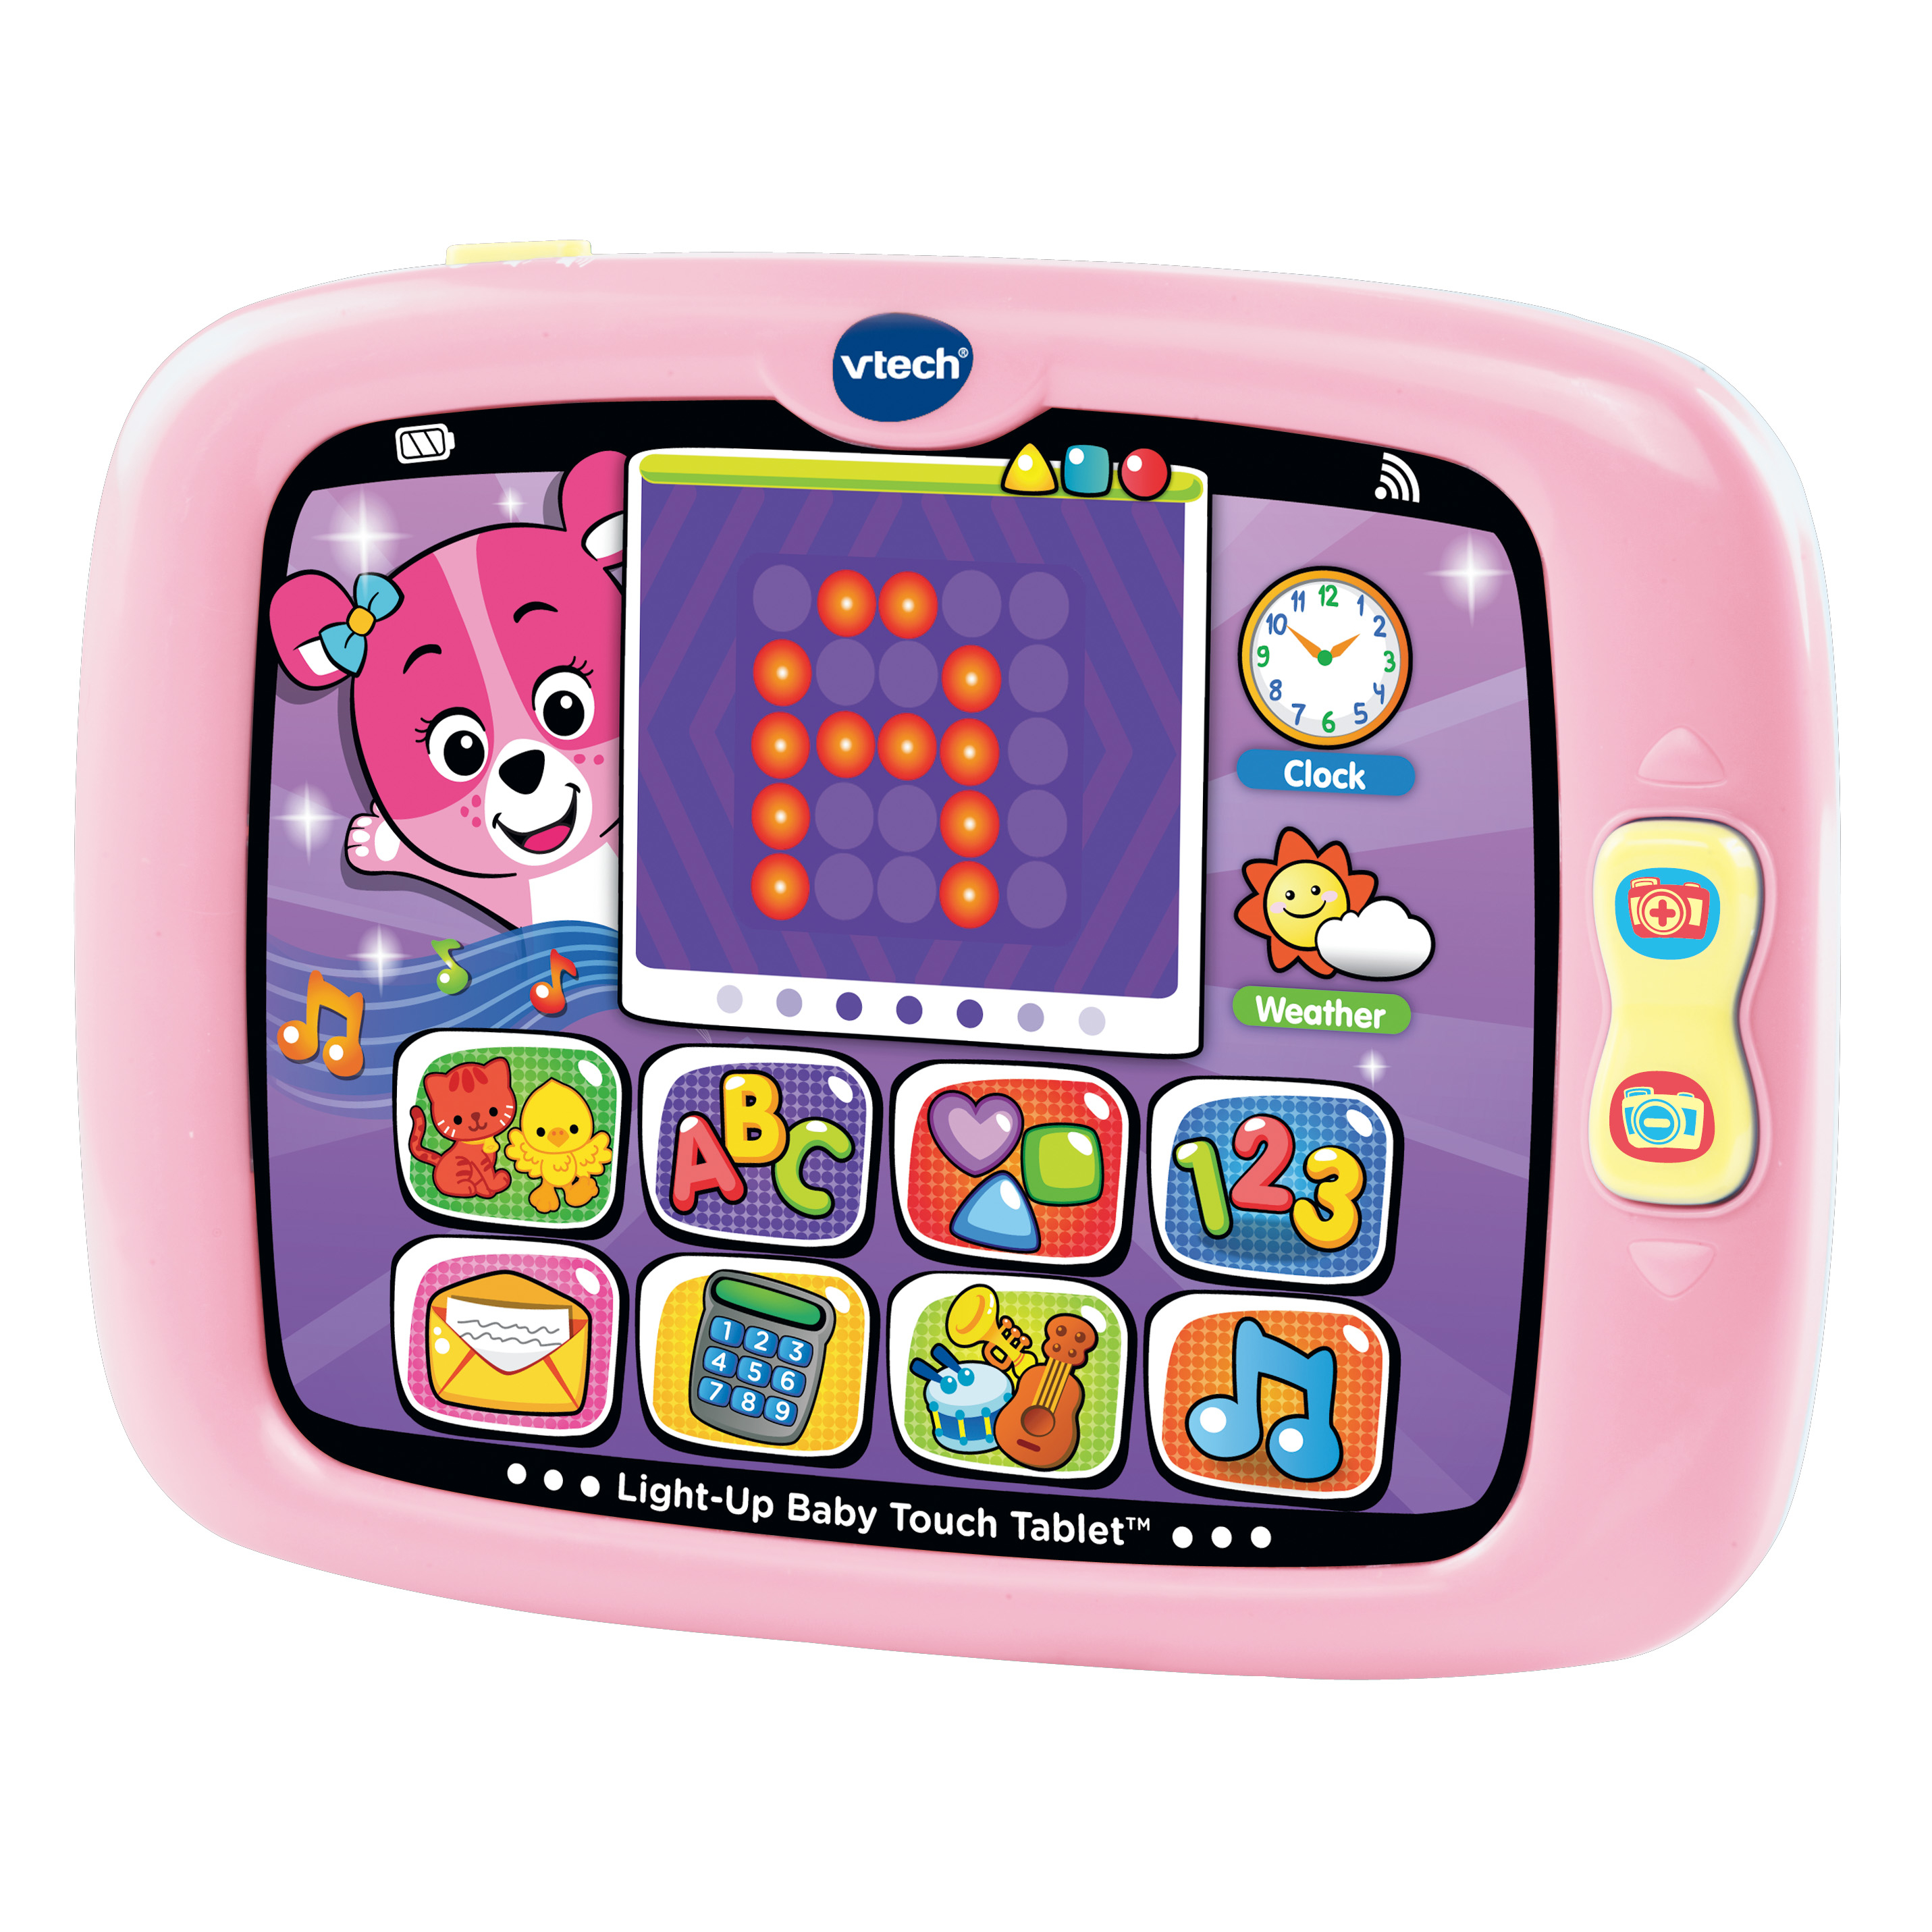 Light-Up Baby Touch Tablet - Pink